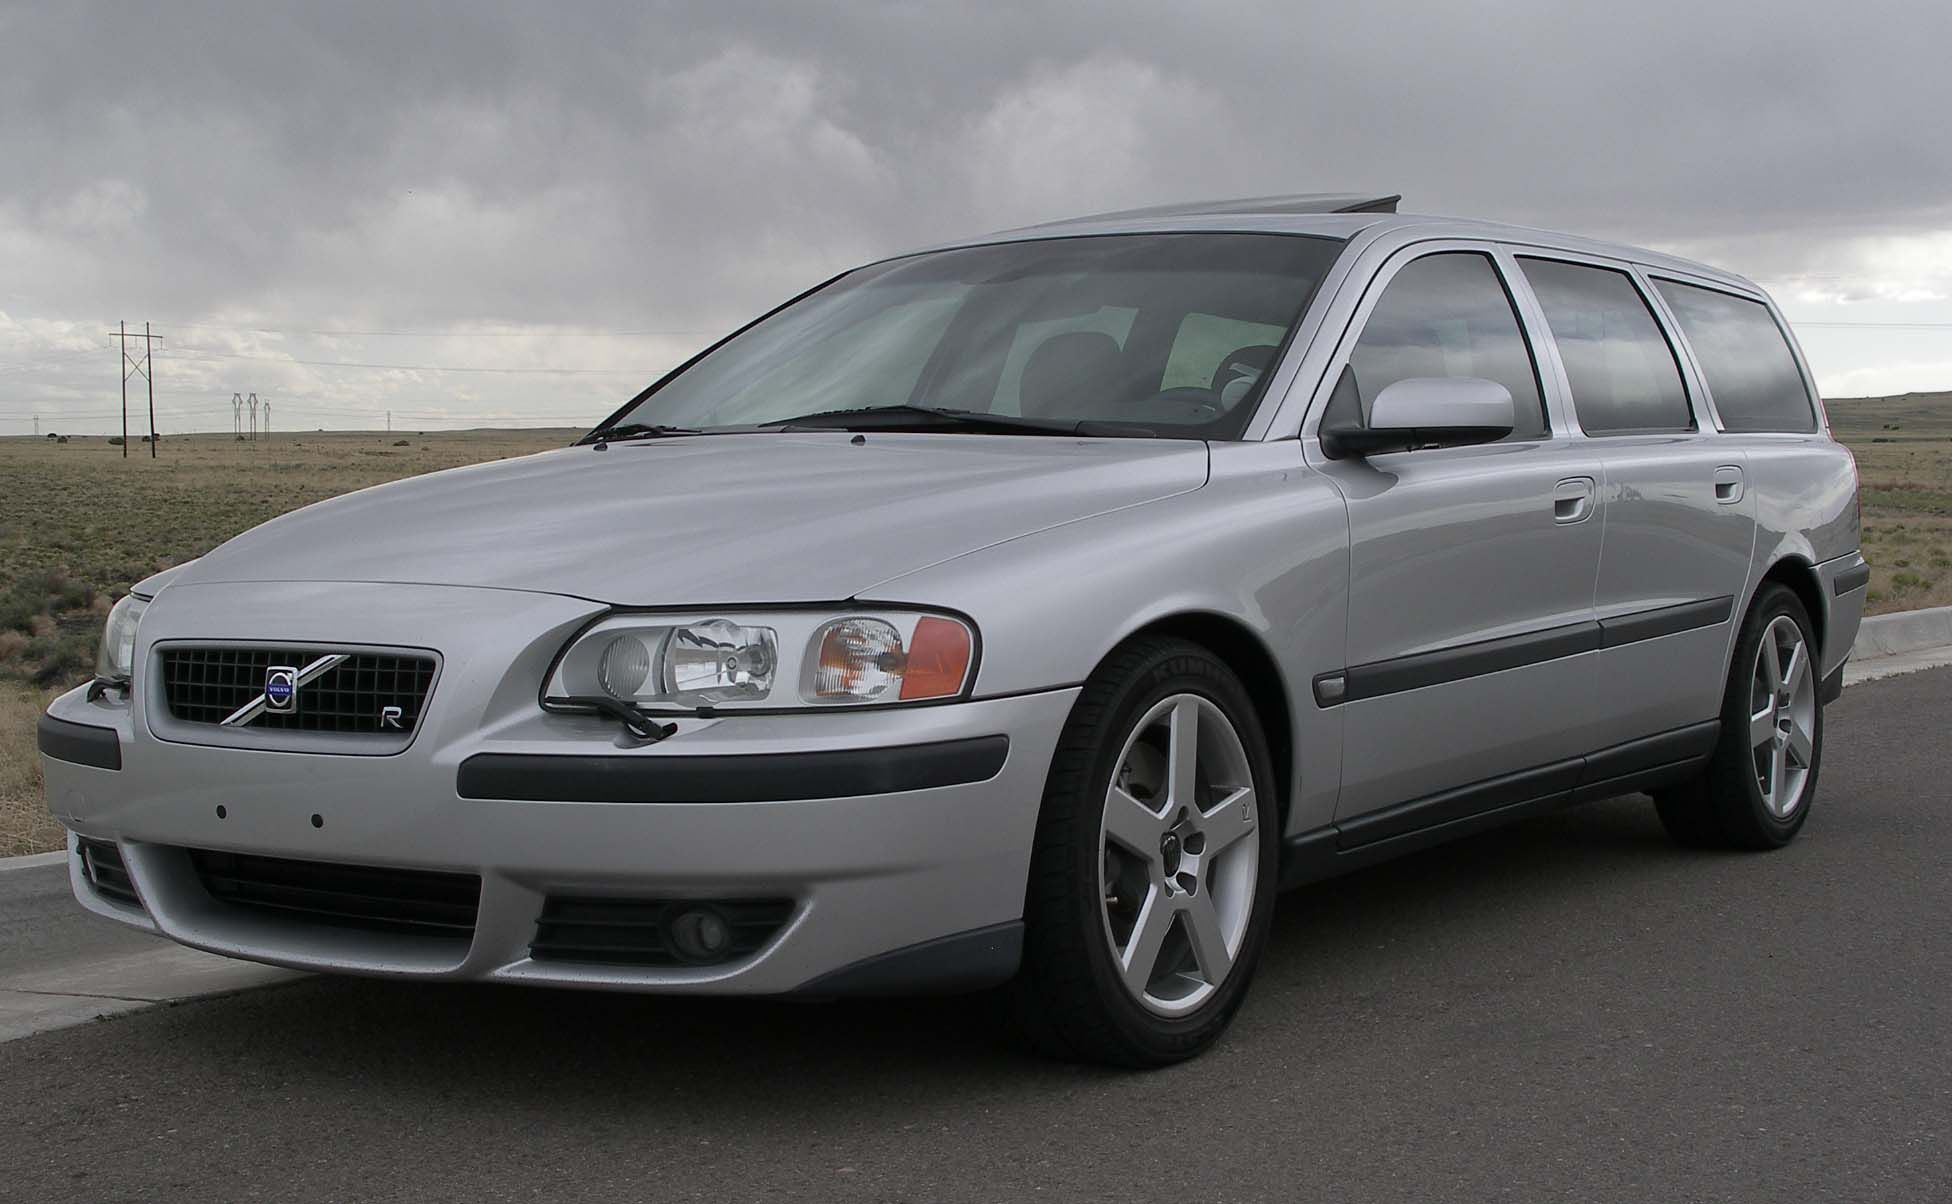 Volvo V70 R AWD Fast, awd, sleeper wagon. Boring on the outside but it's  consequentially the perfect daily driver.